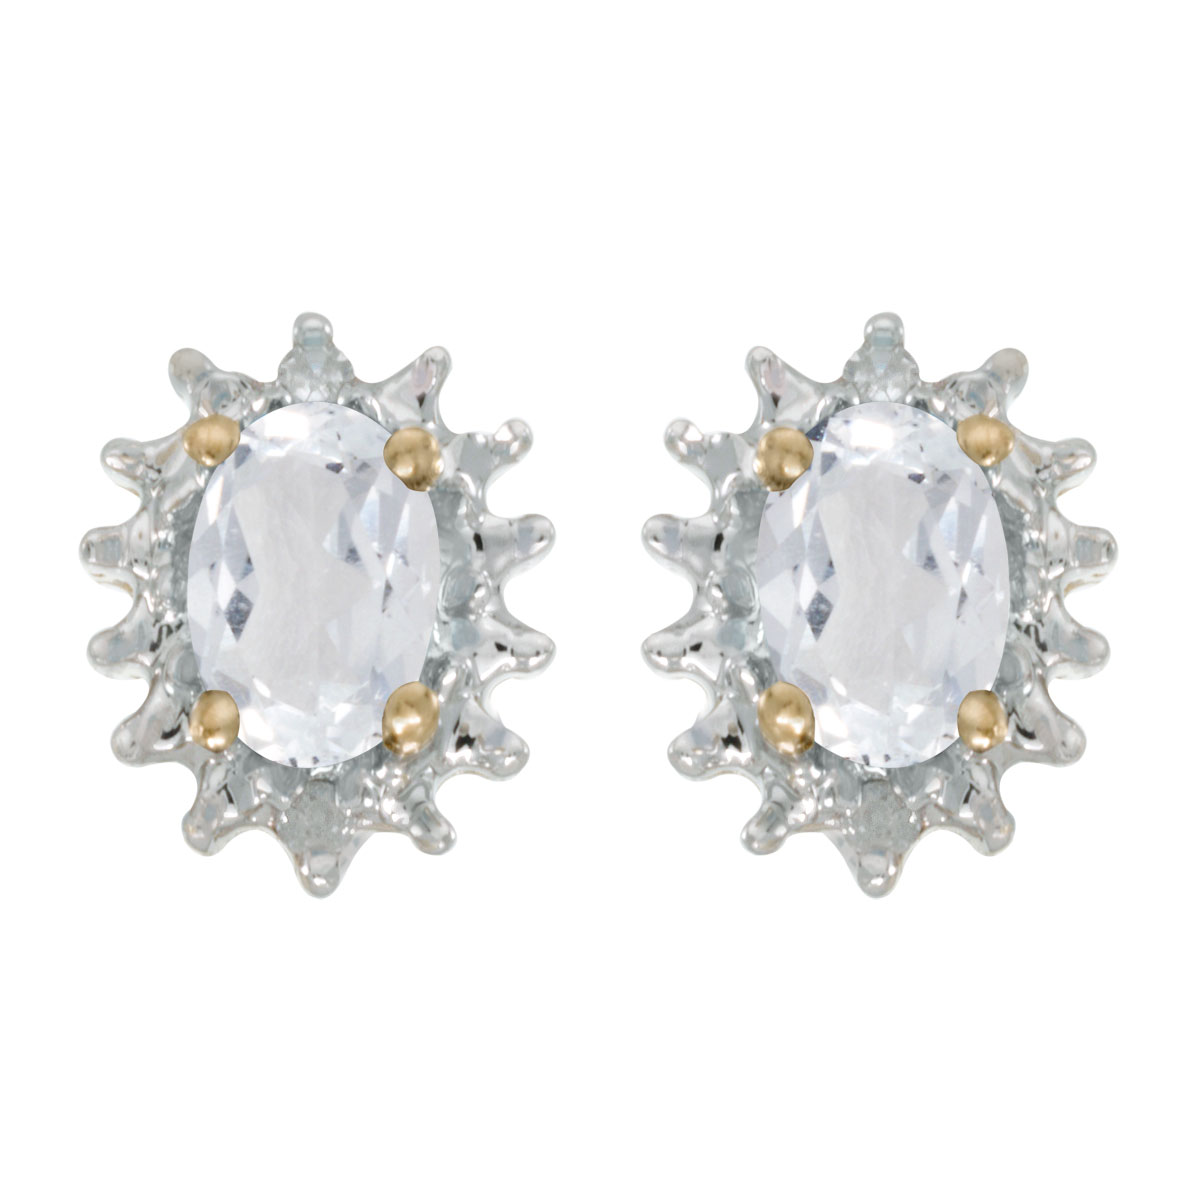 These 14k yellow gold oval white topaz and diamond earrings feature 6x4 mm genuine natural white ...